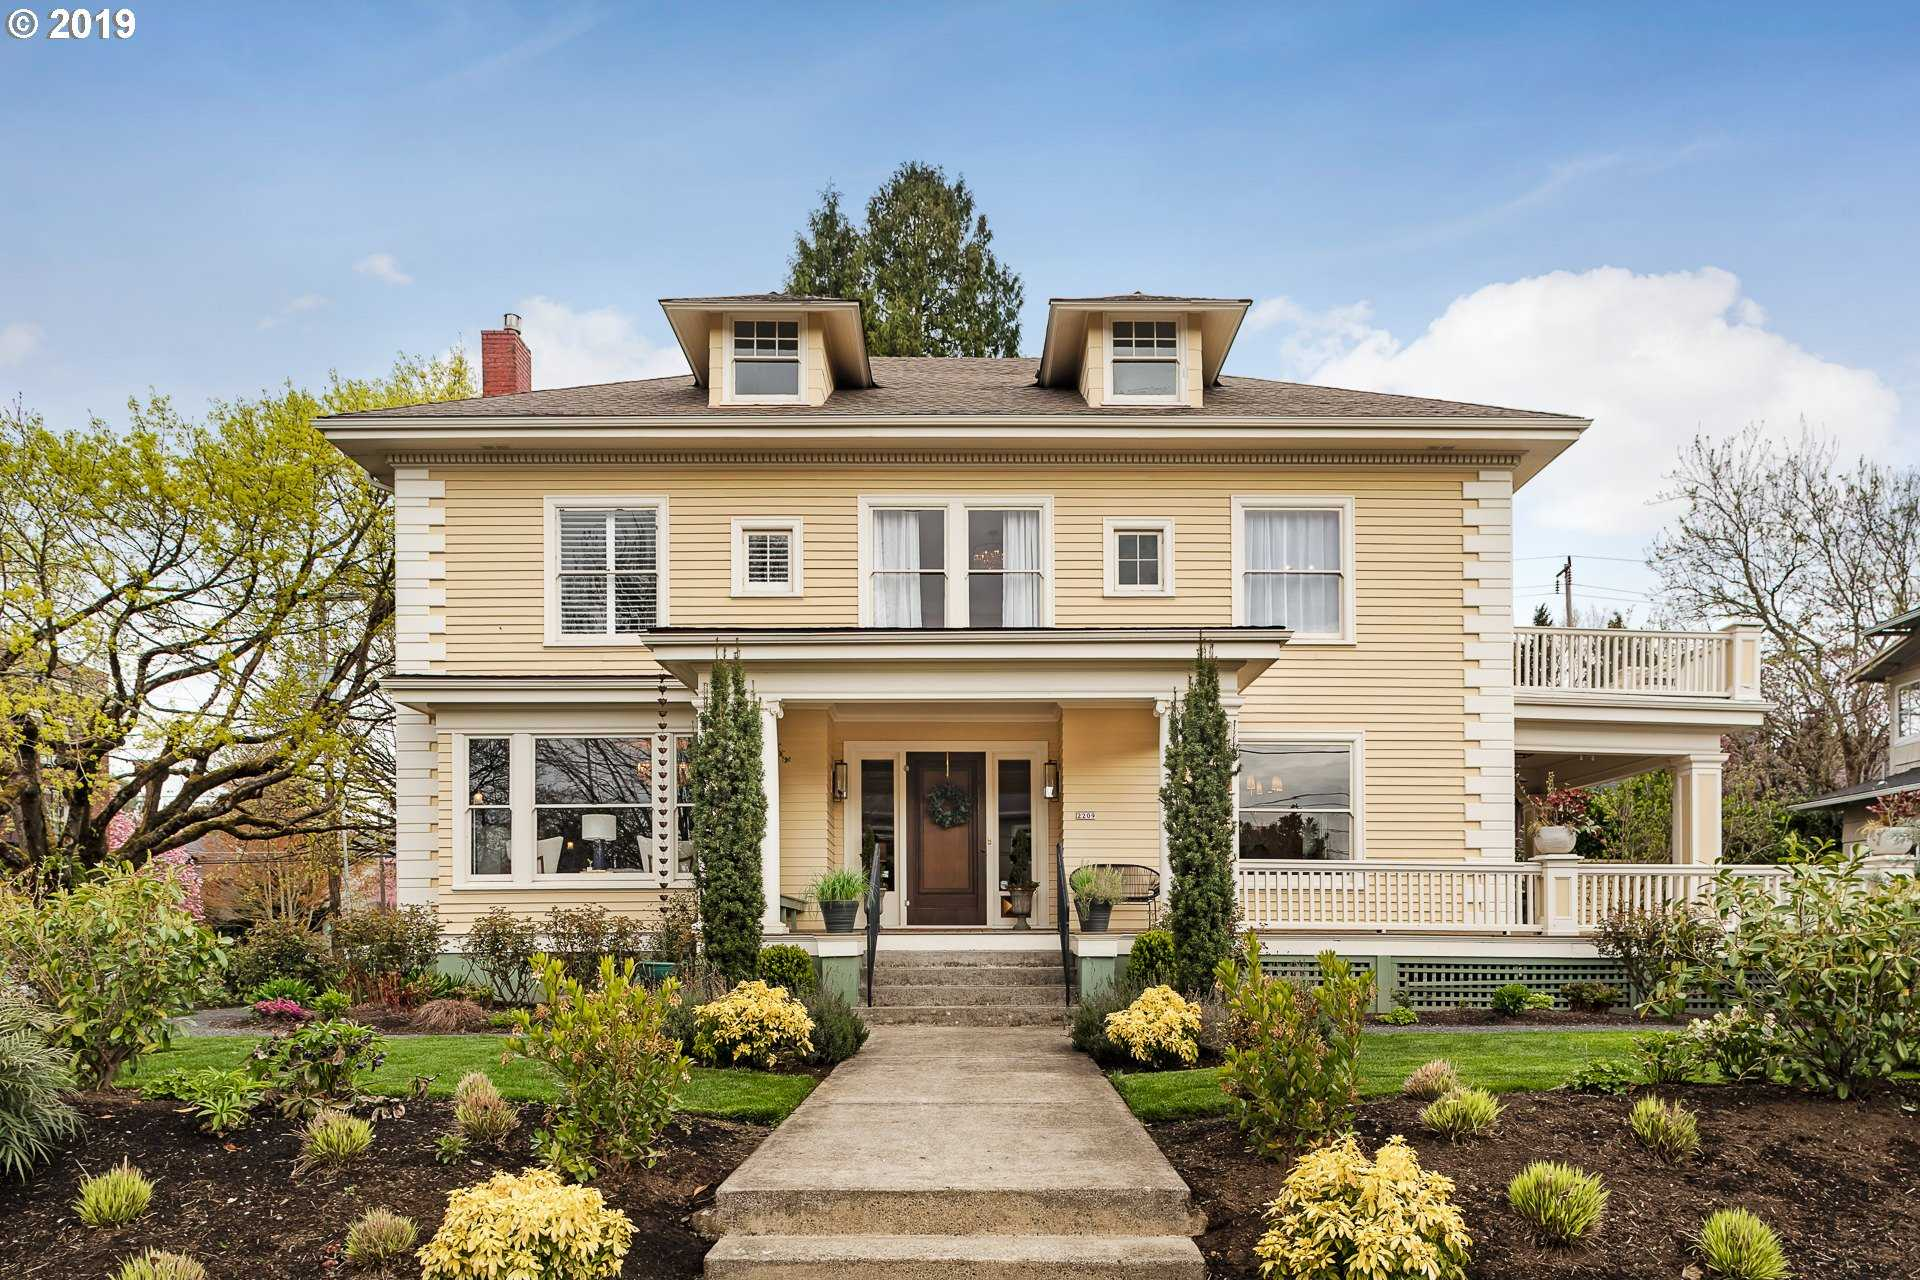 $1,745,000 - 5Br/3Ba -  for Sale in Irvington, Portland